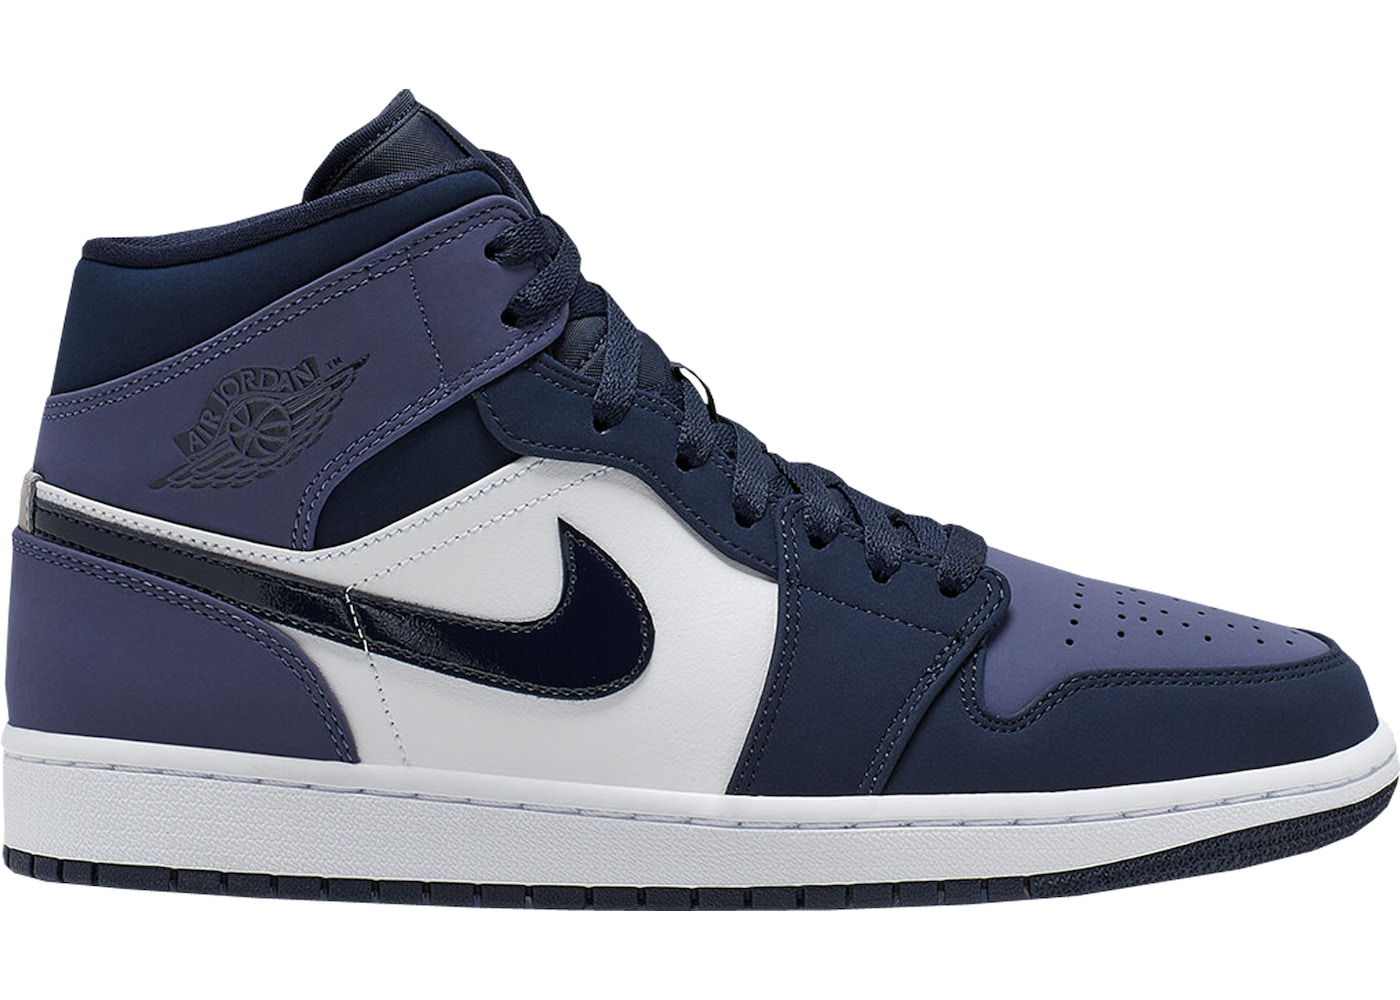 separation shoes 6e227 ba195 Jordan 1 Mid Obsidian Sanded Purple